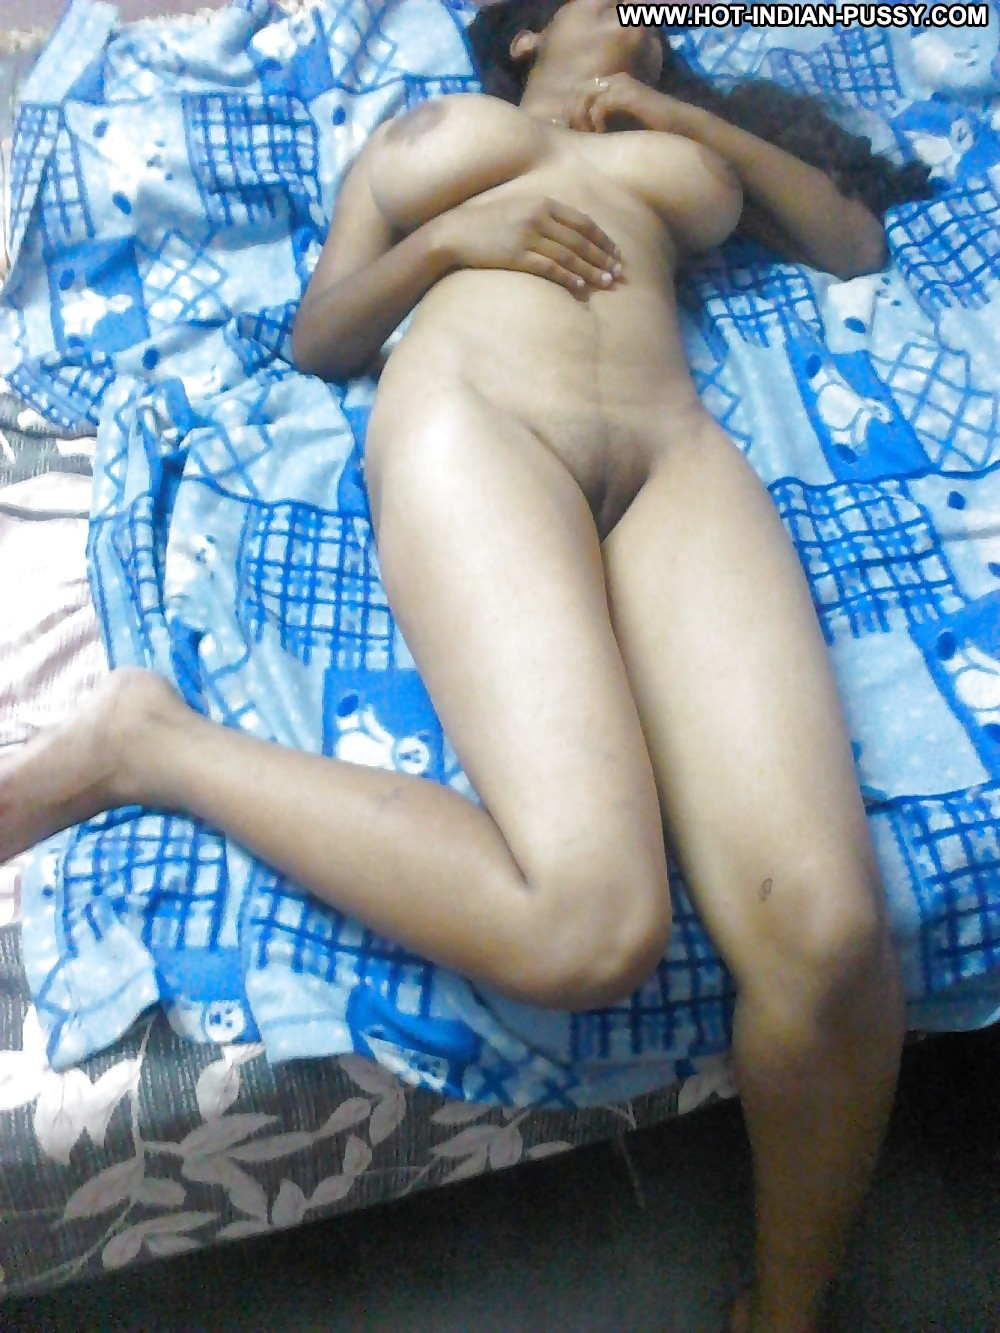 Mallu school girls in nude hot sexy beauty